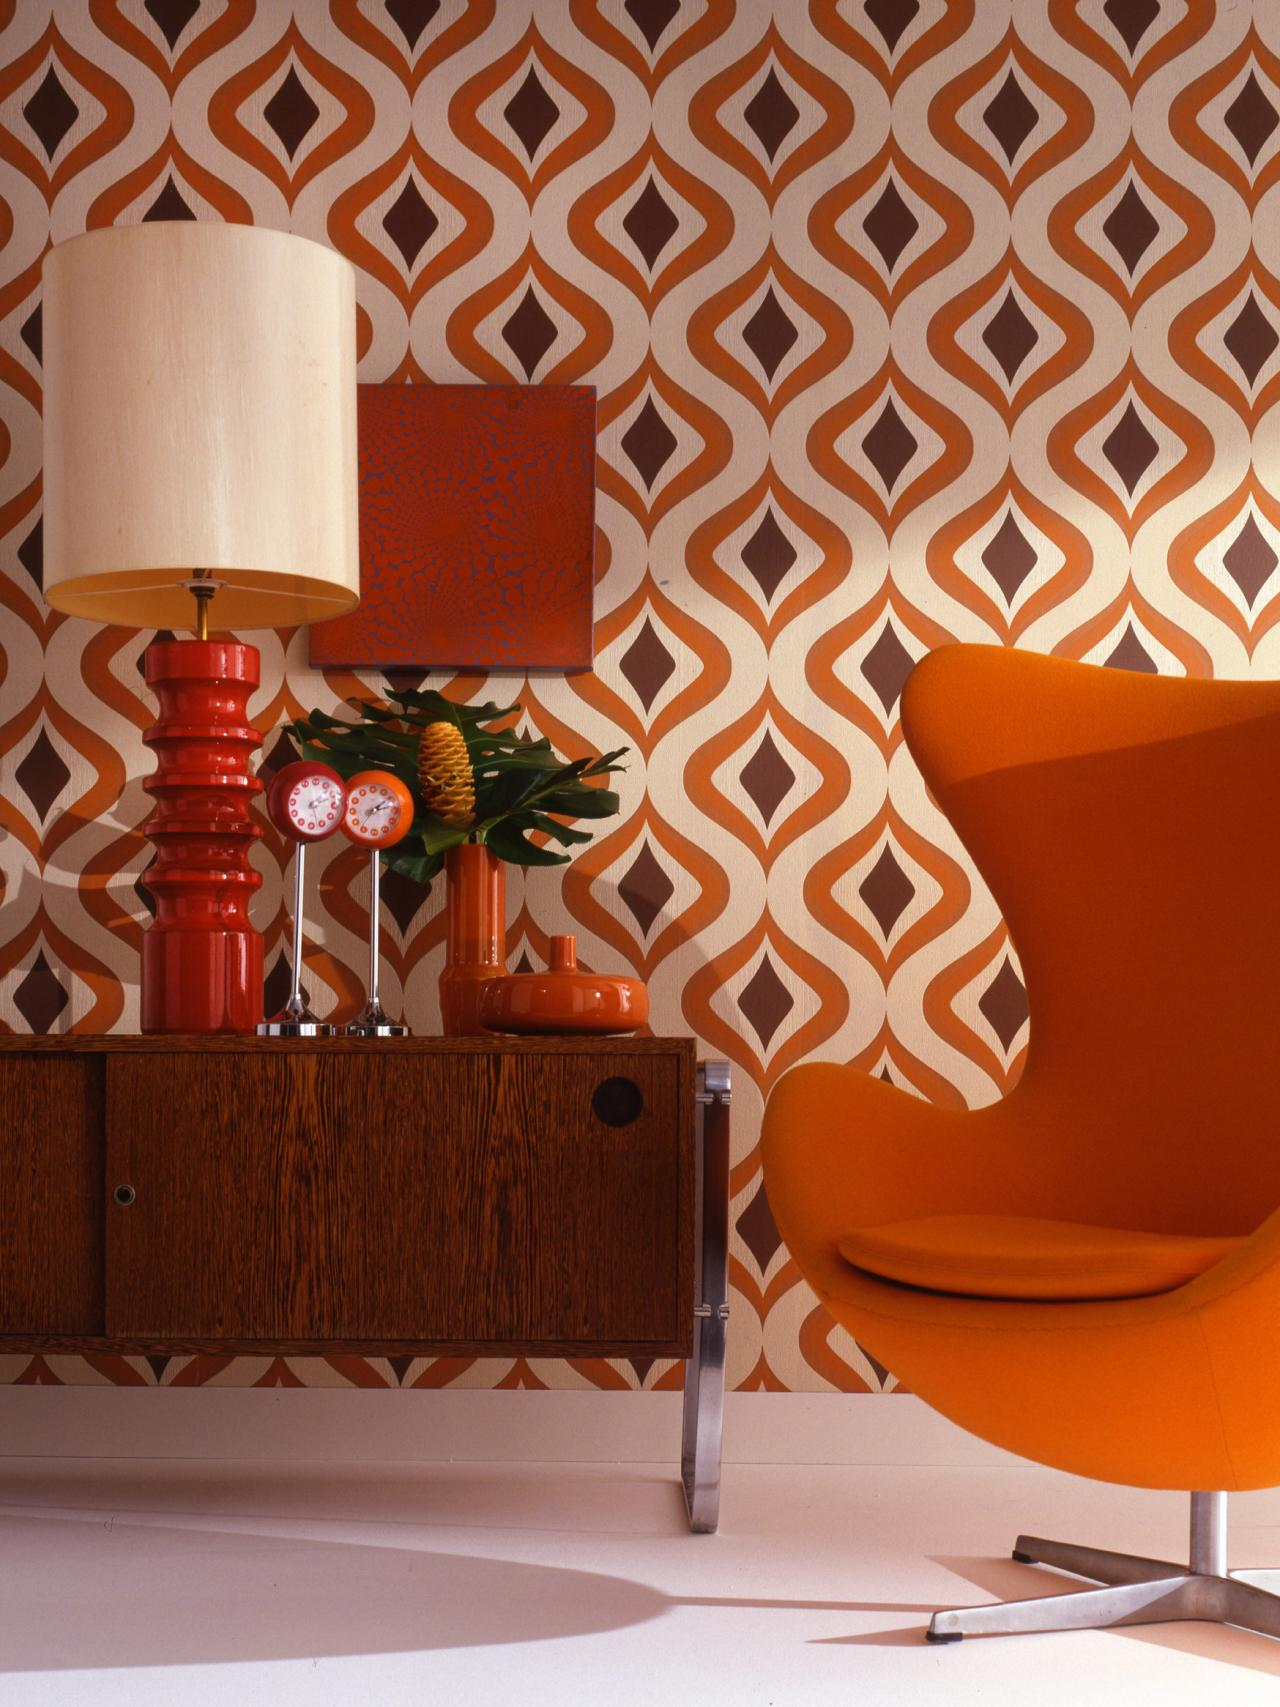 Best Online Sources for Wallpaper Decorating and Design Blog HGTV 1280x1707